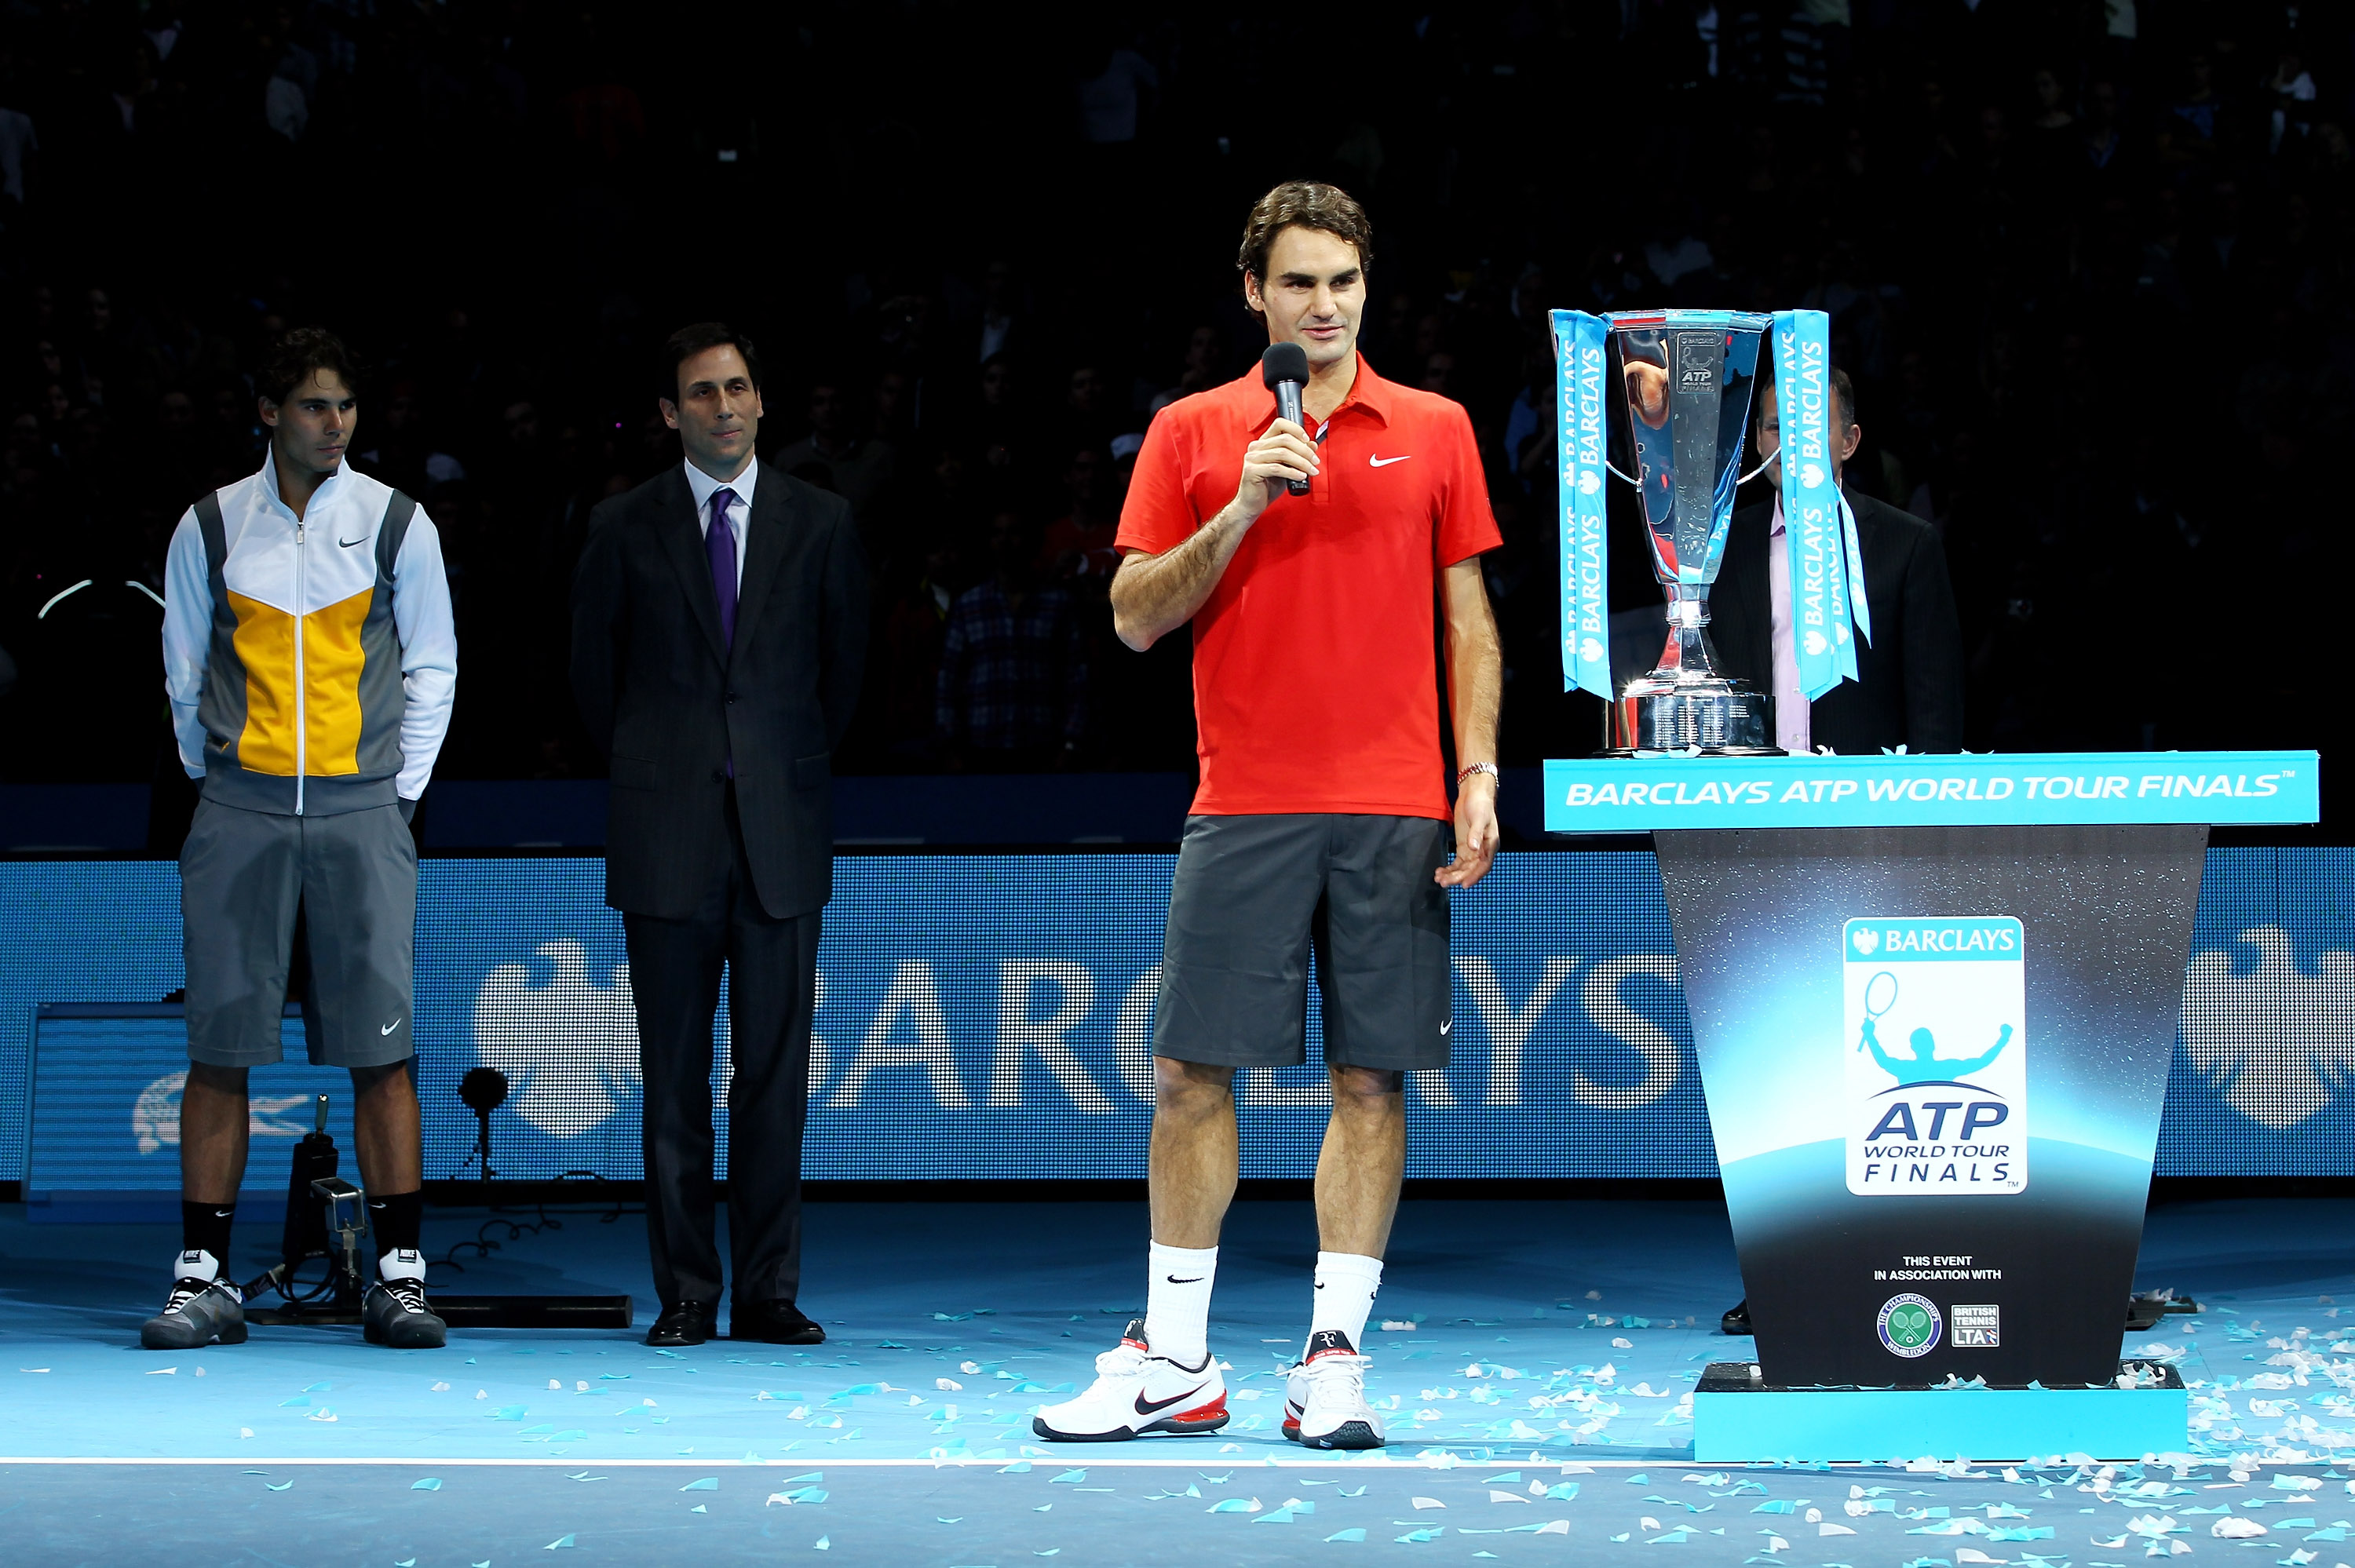 Roger Federer suffered some shock defeats this year, but overall, had a good season.